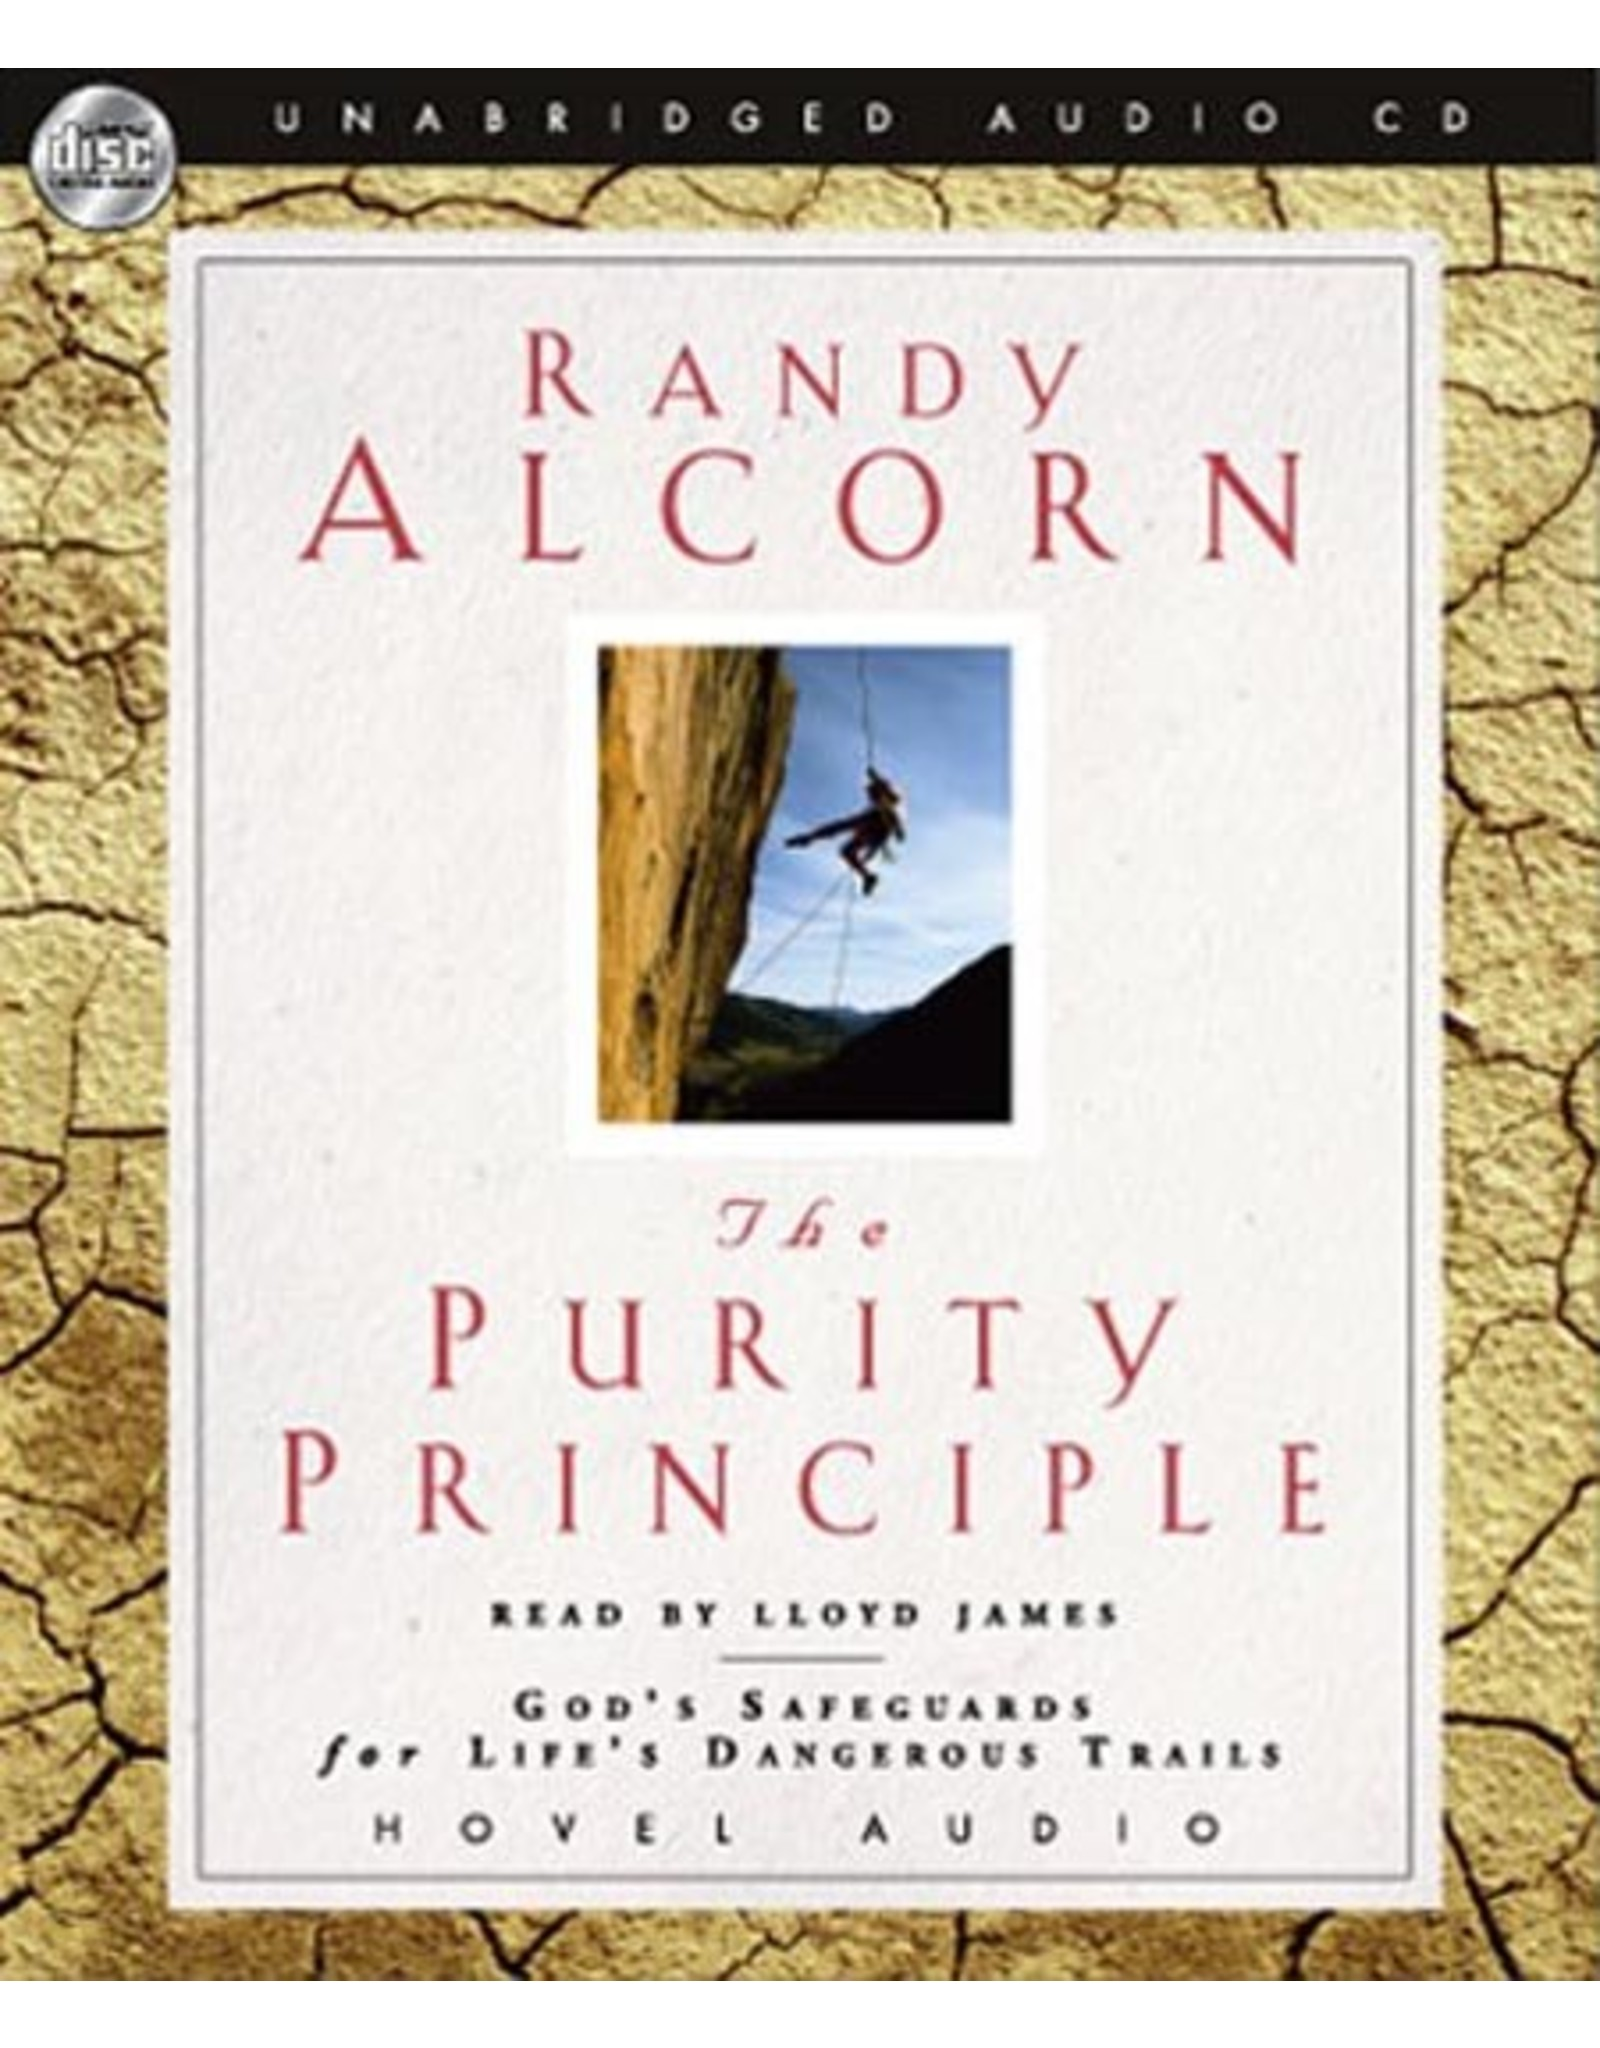 Hovel Audio The Purity Principle: God's Safeguards for Life's Dangerous Trails (Audio CD)